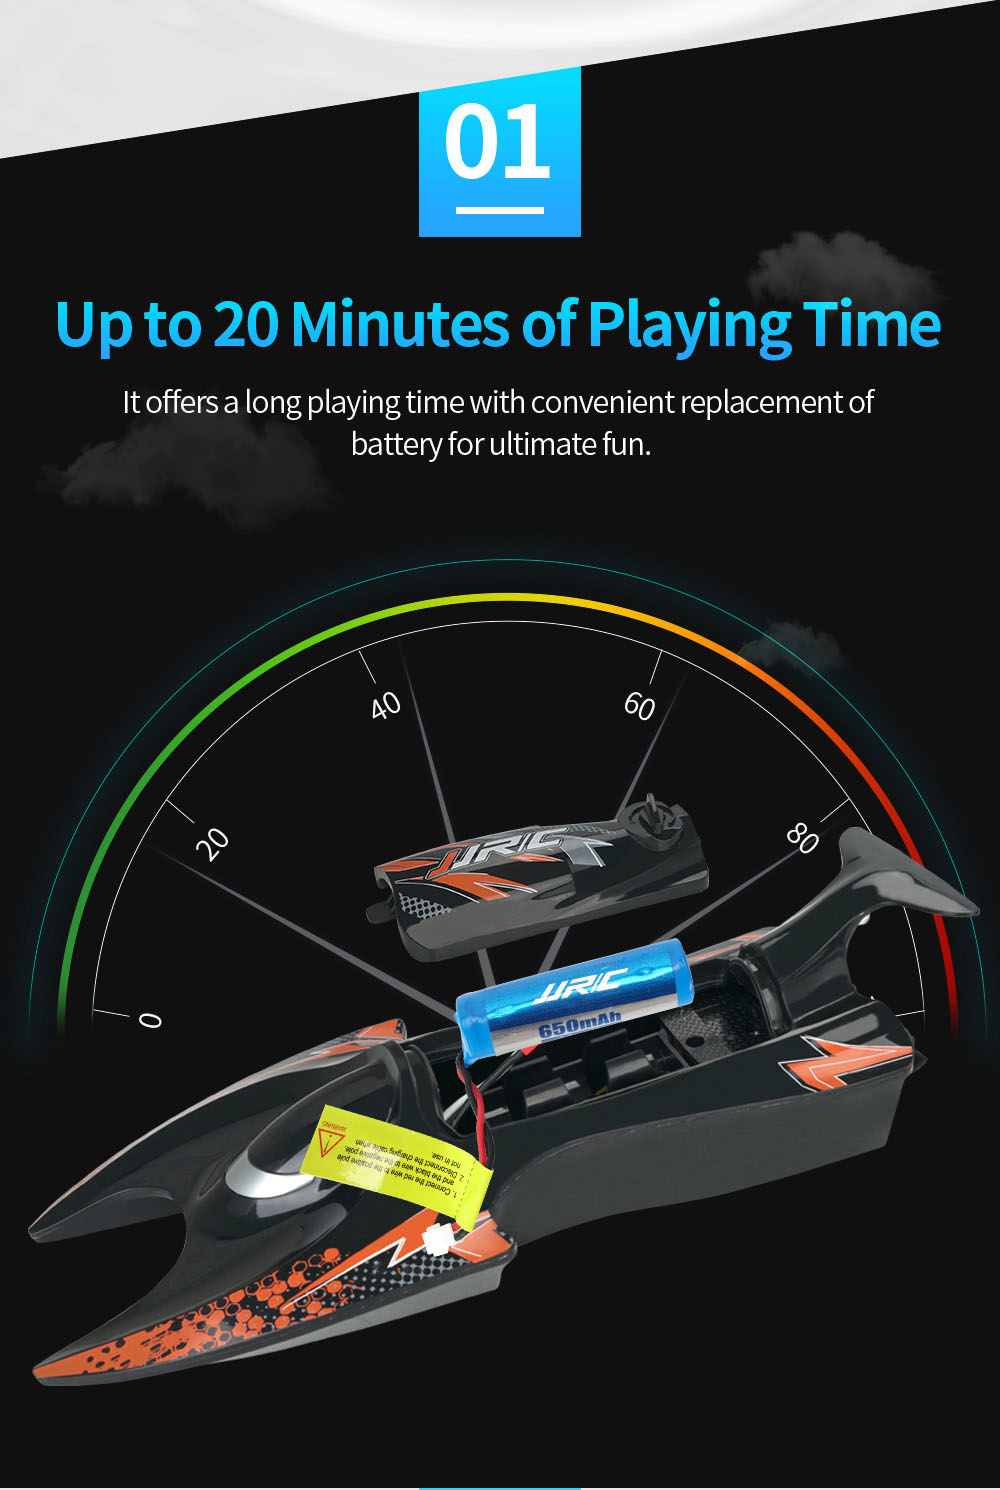 JJRC S6 2.4G Electric RC Boat Vehicle Model palying time